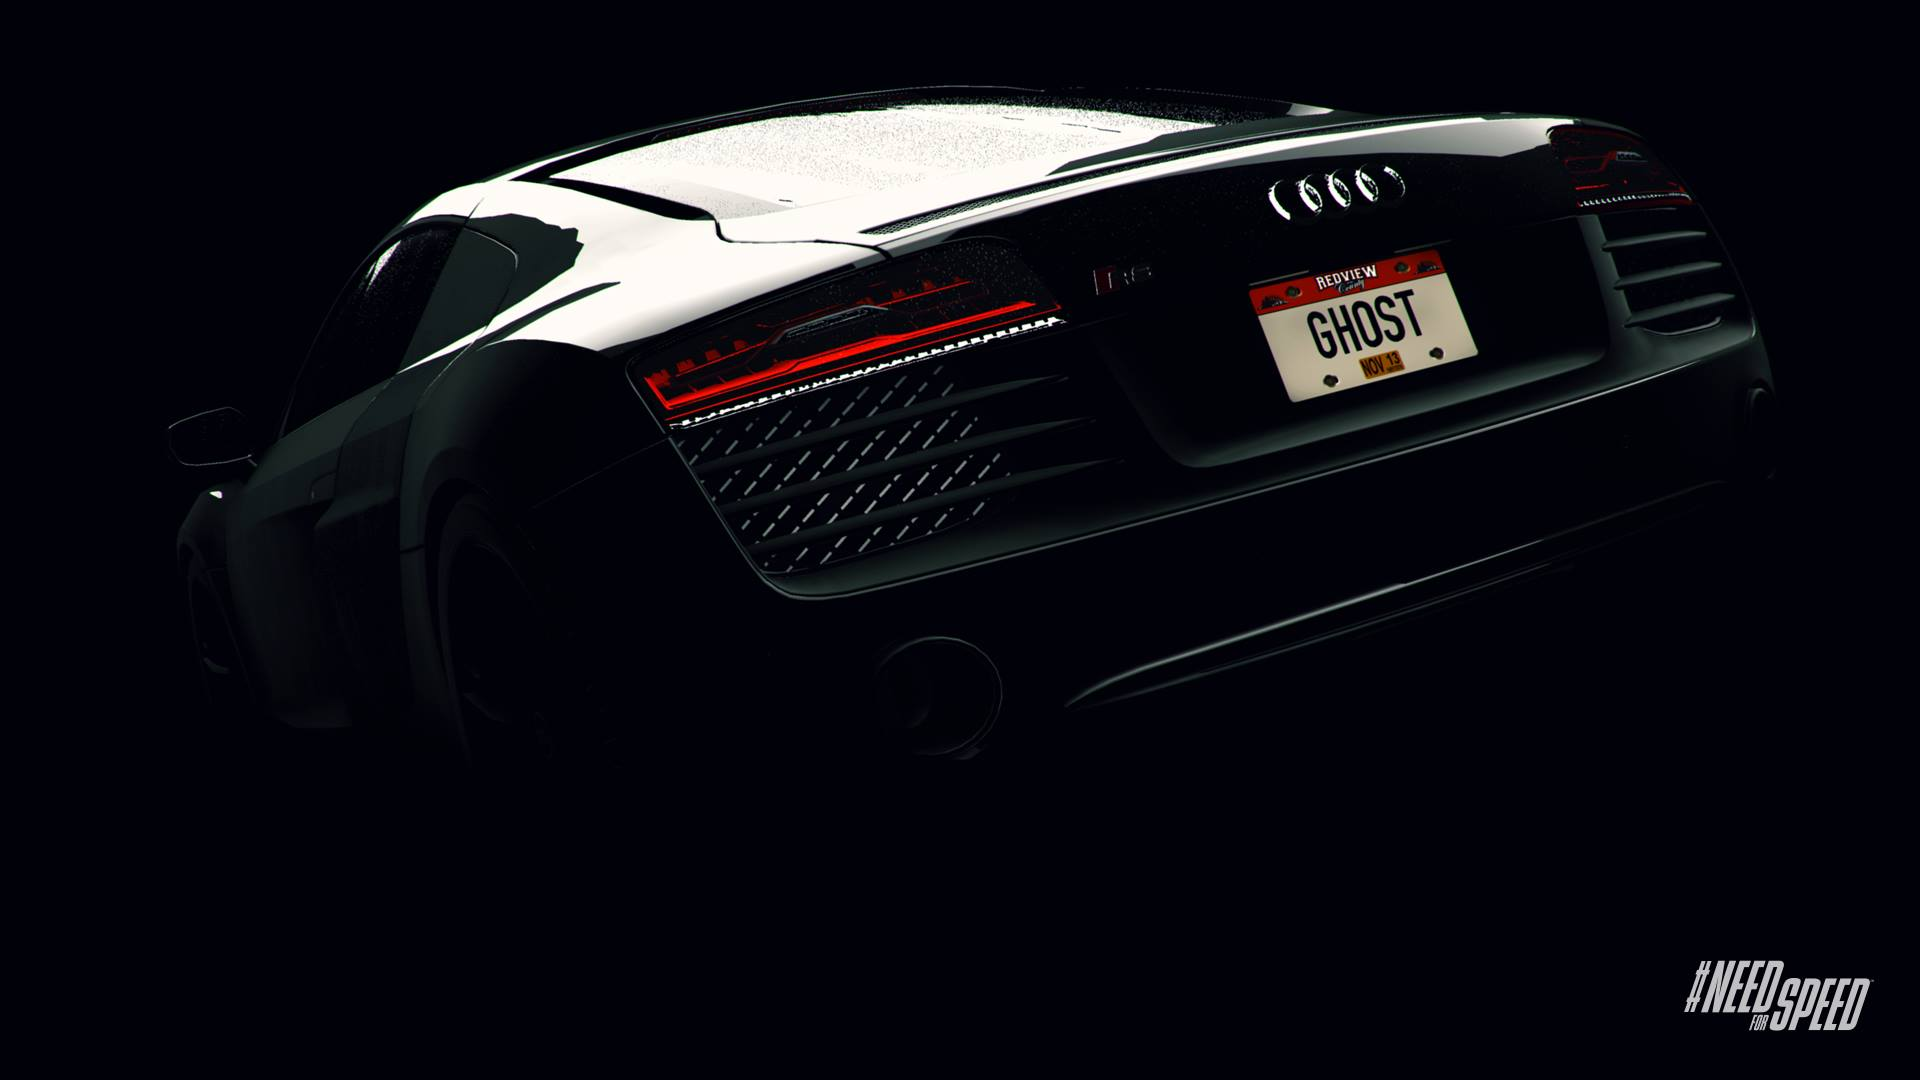 Audi R8 V10 Plus (Gen. 1) | Need for Speed Wiki | FANDOM powered by ...